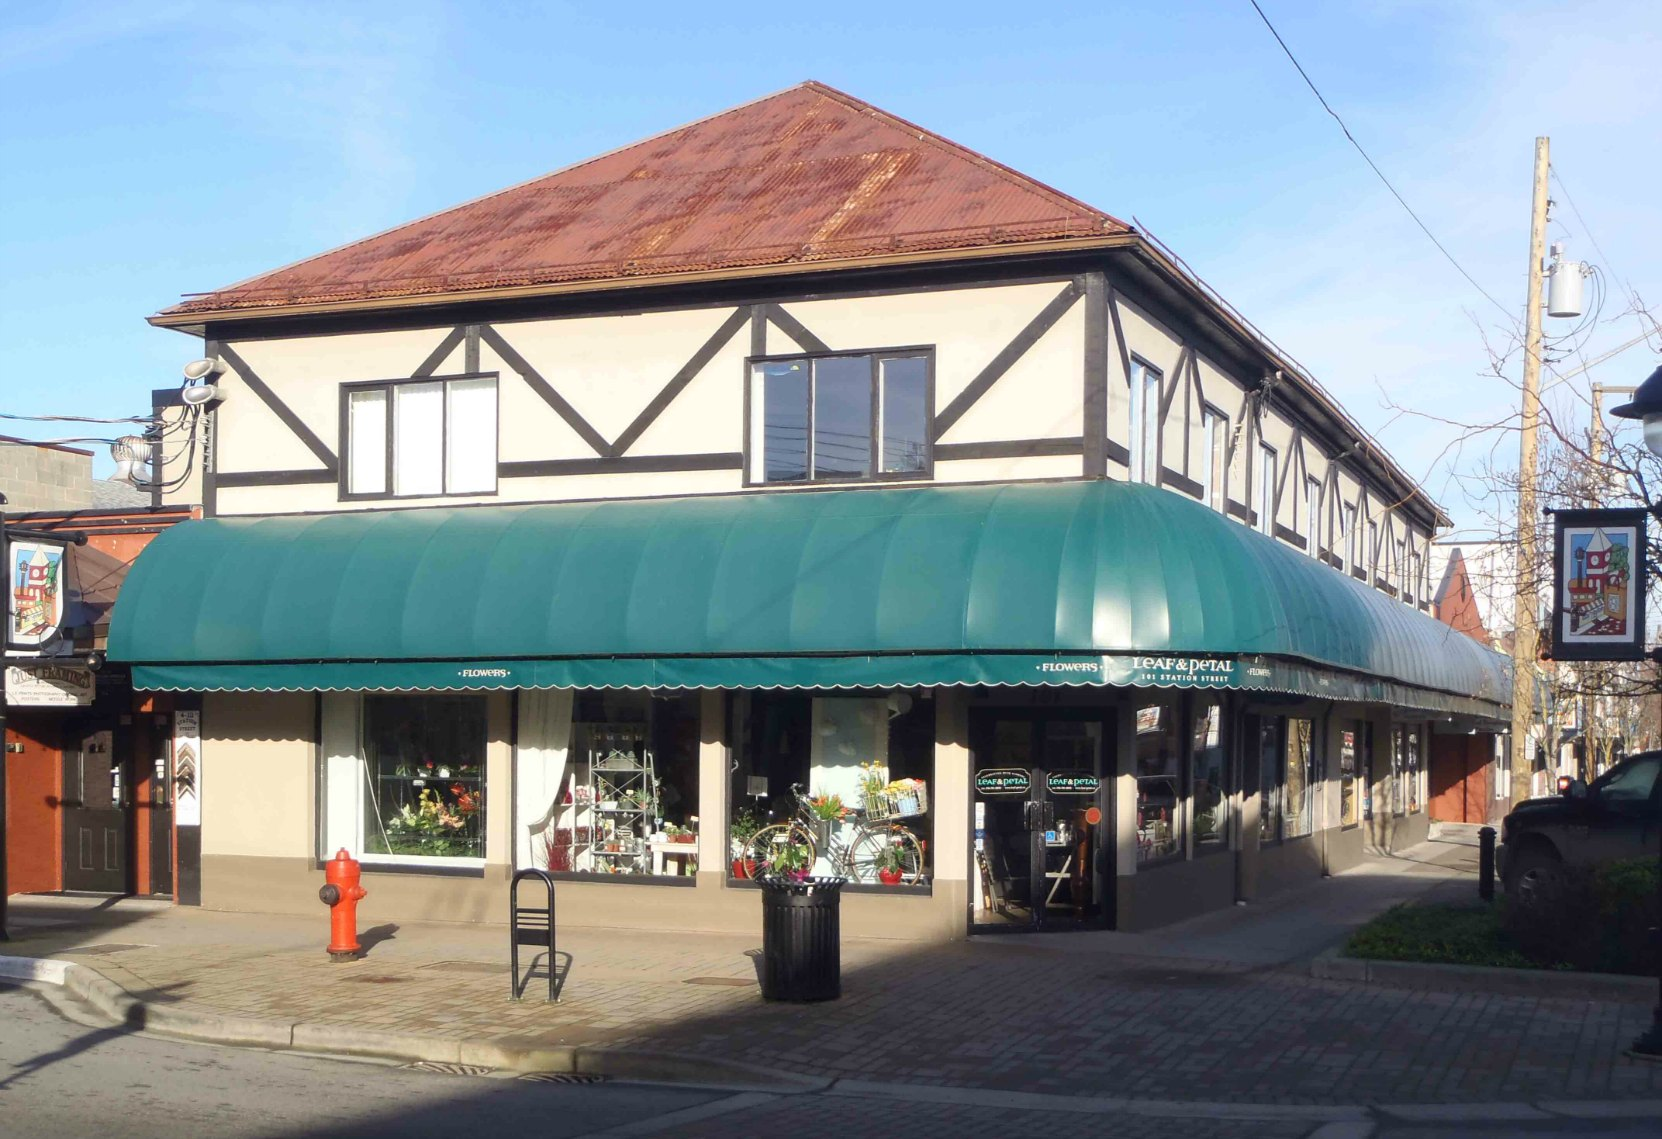 101 Craig Street. Built circa 1893 by Christopher Dobson for his wheelwright and carriage making business.